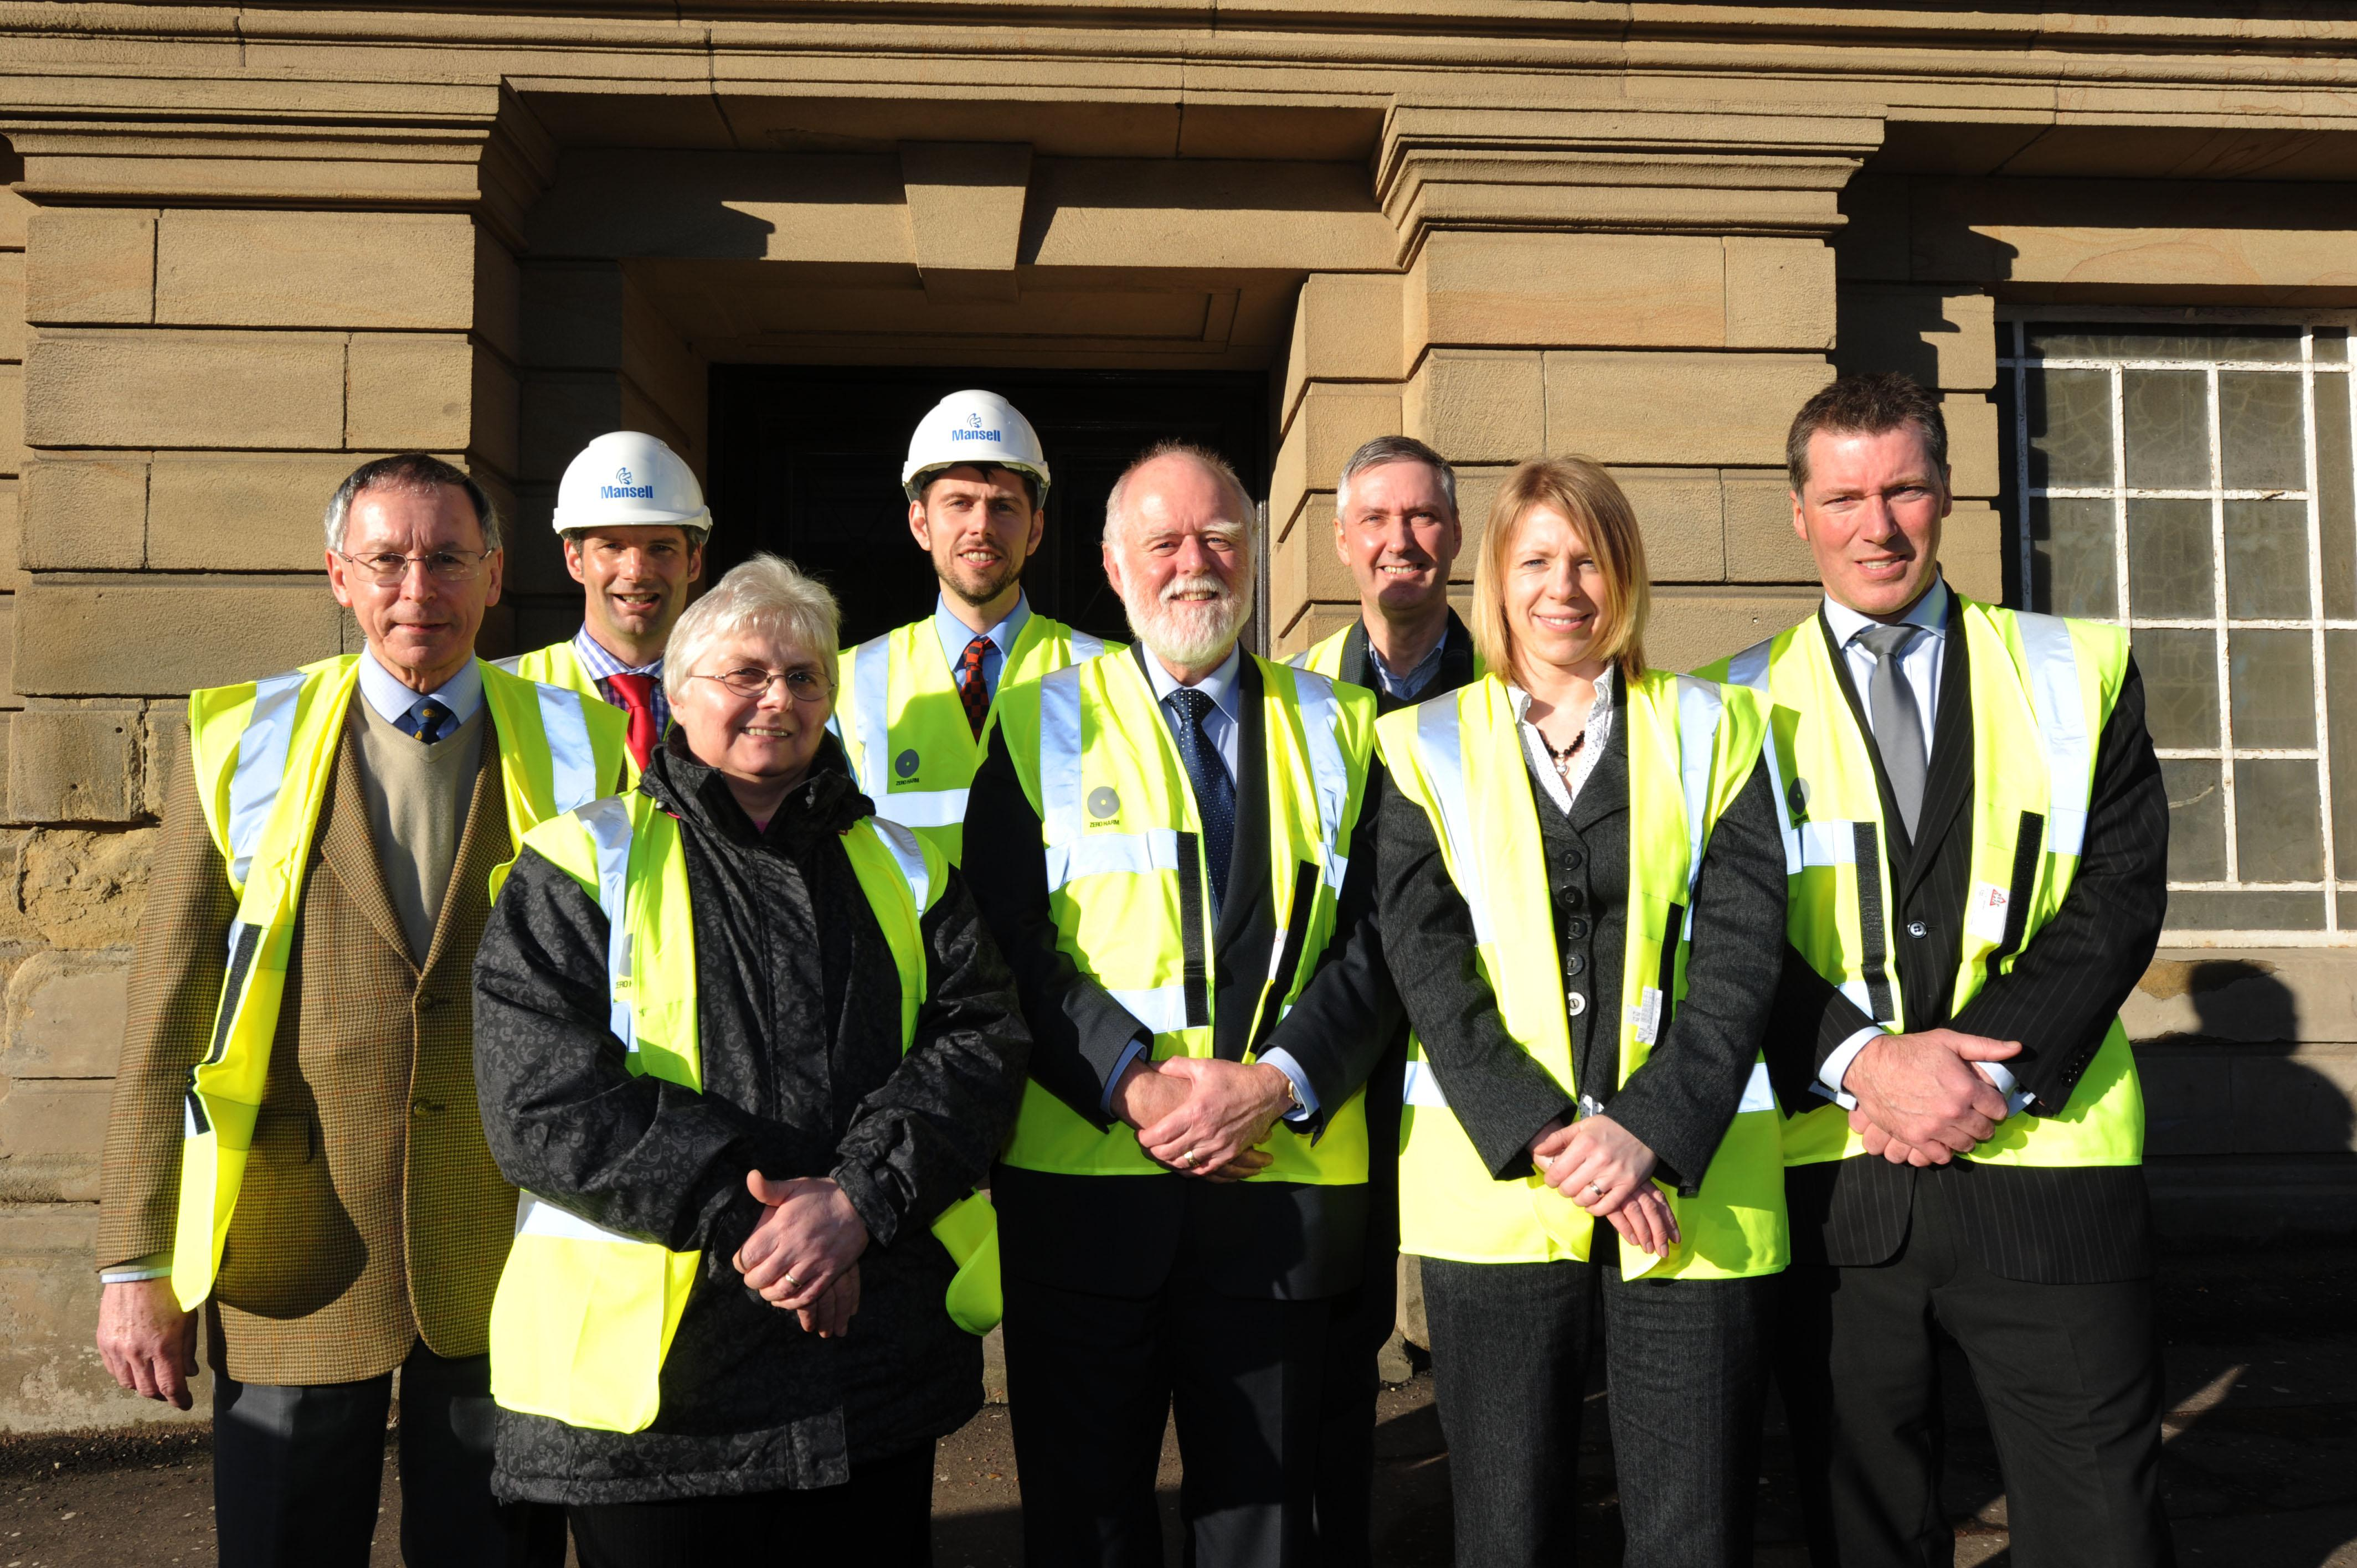 Mansell Regional Director, Callum Leslie, Mansell Site Manager, Simon Steel, South Lanarkshire Council Architect, Mark Hall with (front) Chair of Cargill House Club, Kevan Carty, Manager of Cargill House Club Margaret Maxwell, Depute Chair of Community Re